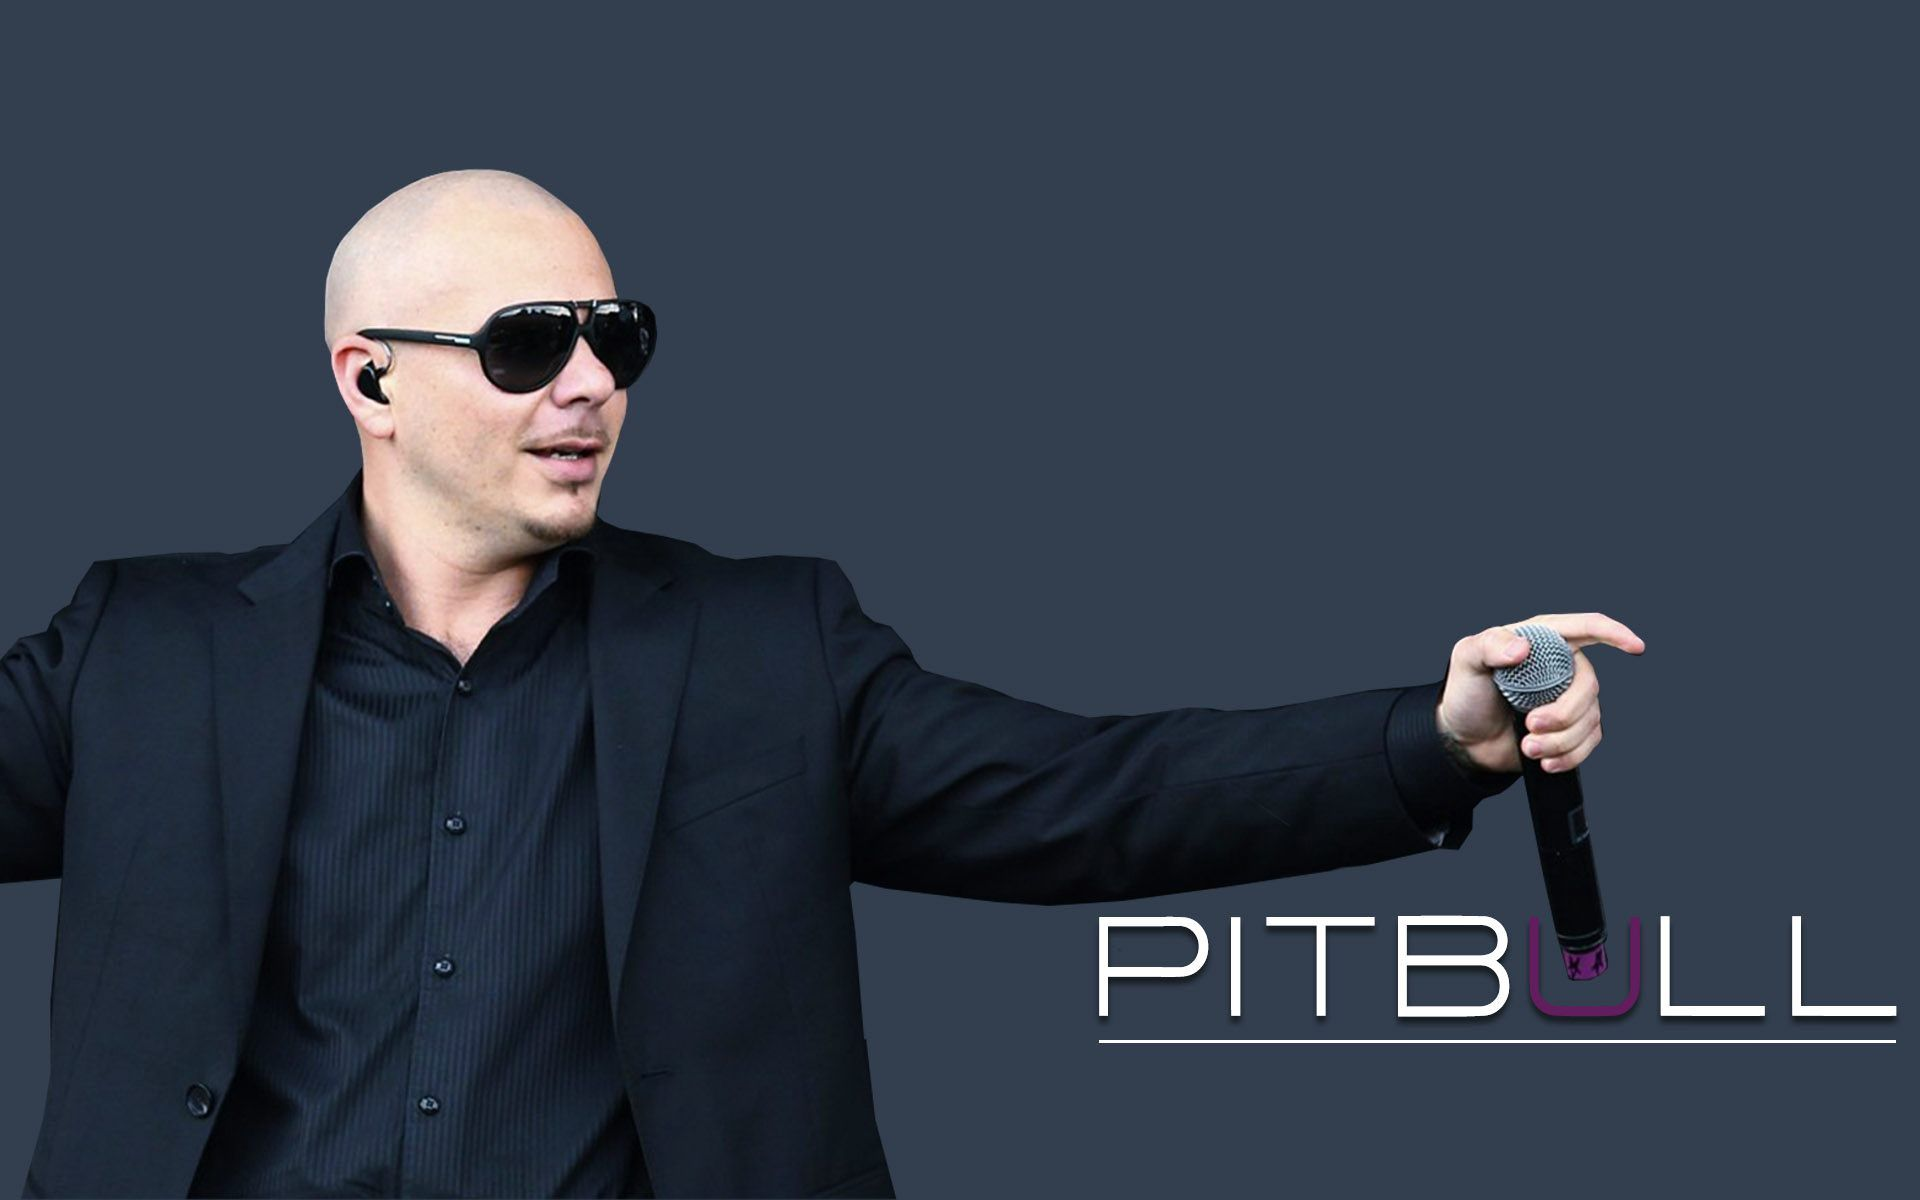 Hd Wallpapers Of Girls And Cars Pitbull Rapper Hd Wallpapers